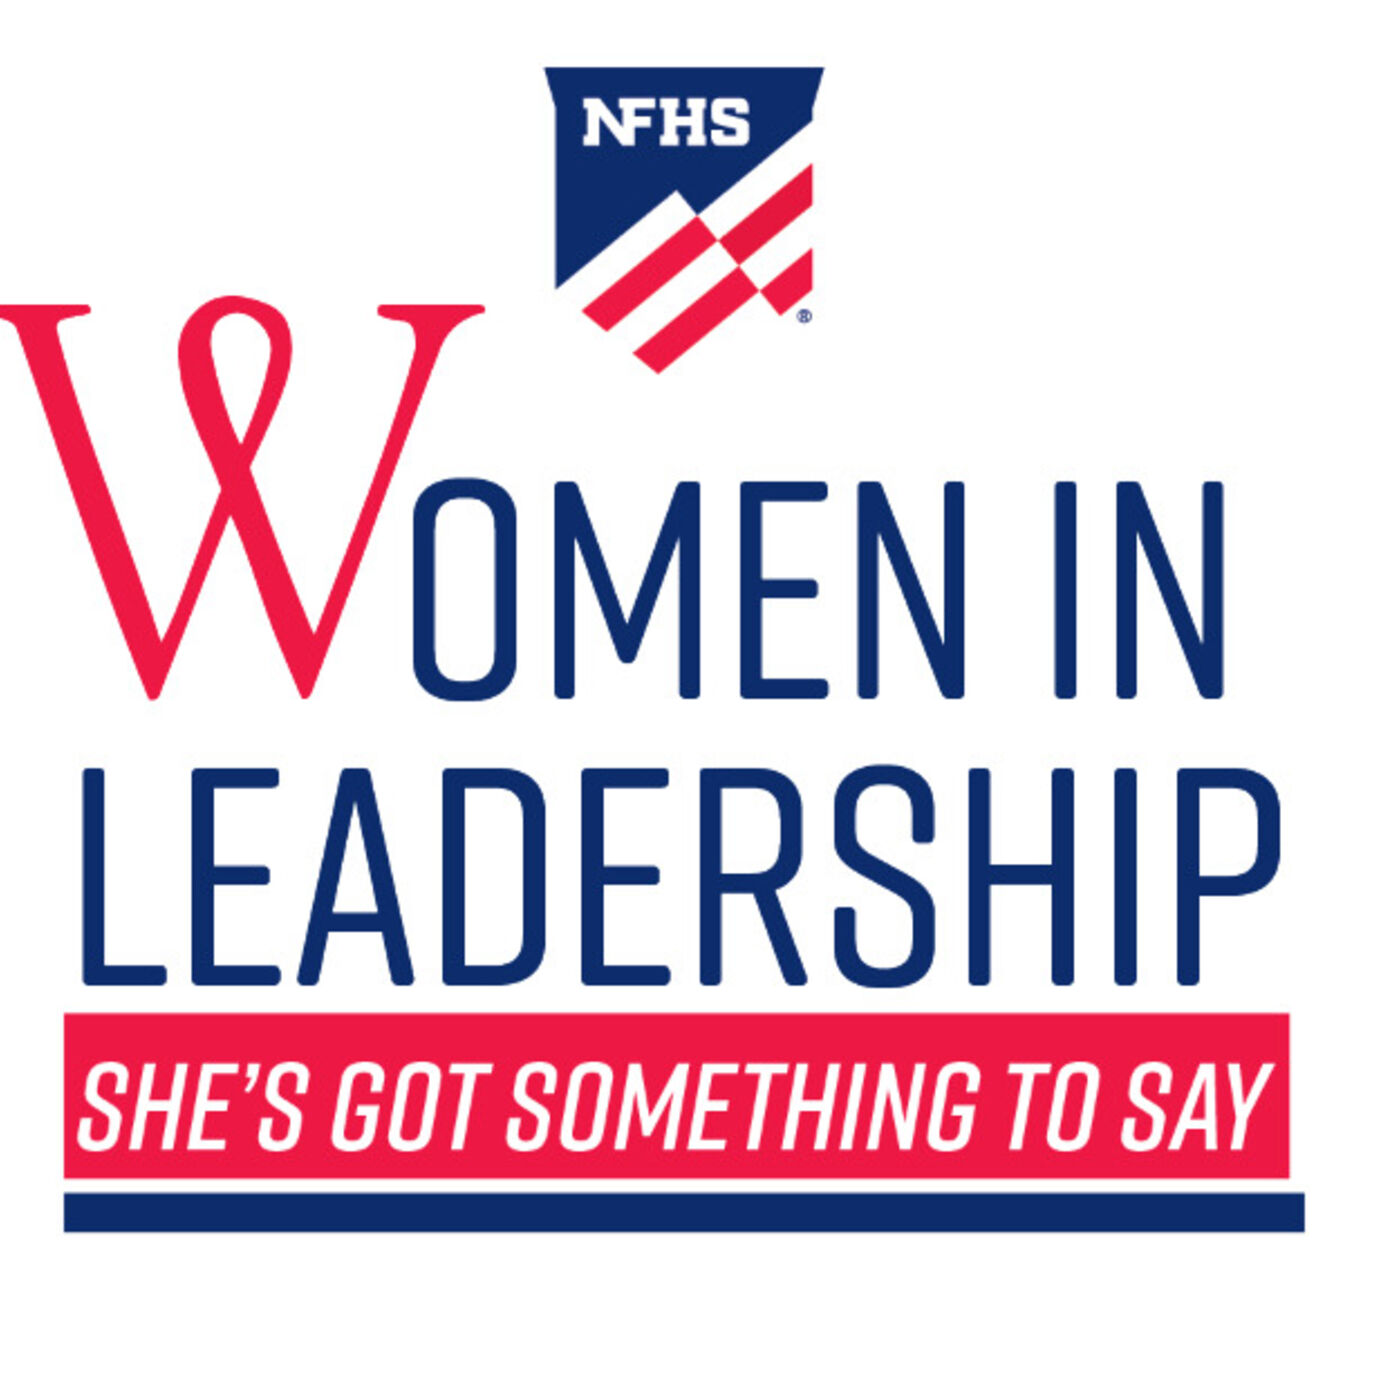 She's Got Something To Say - Theresia Wynns (NFHS)